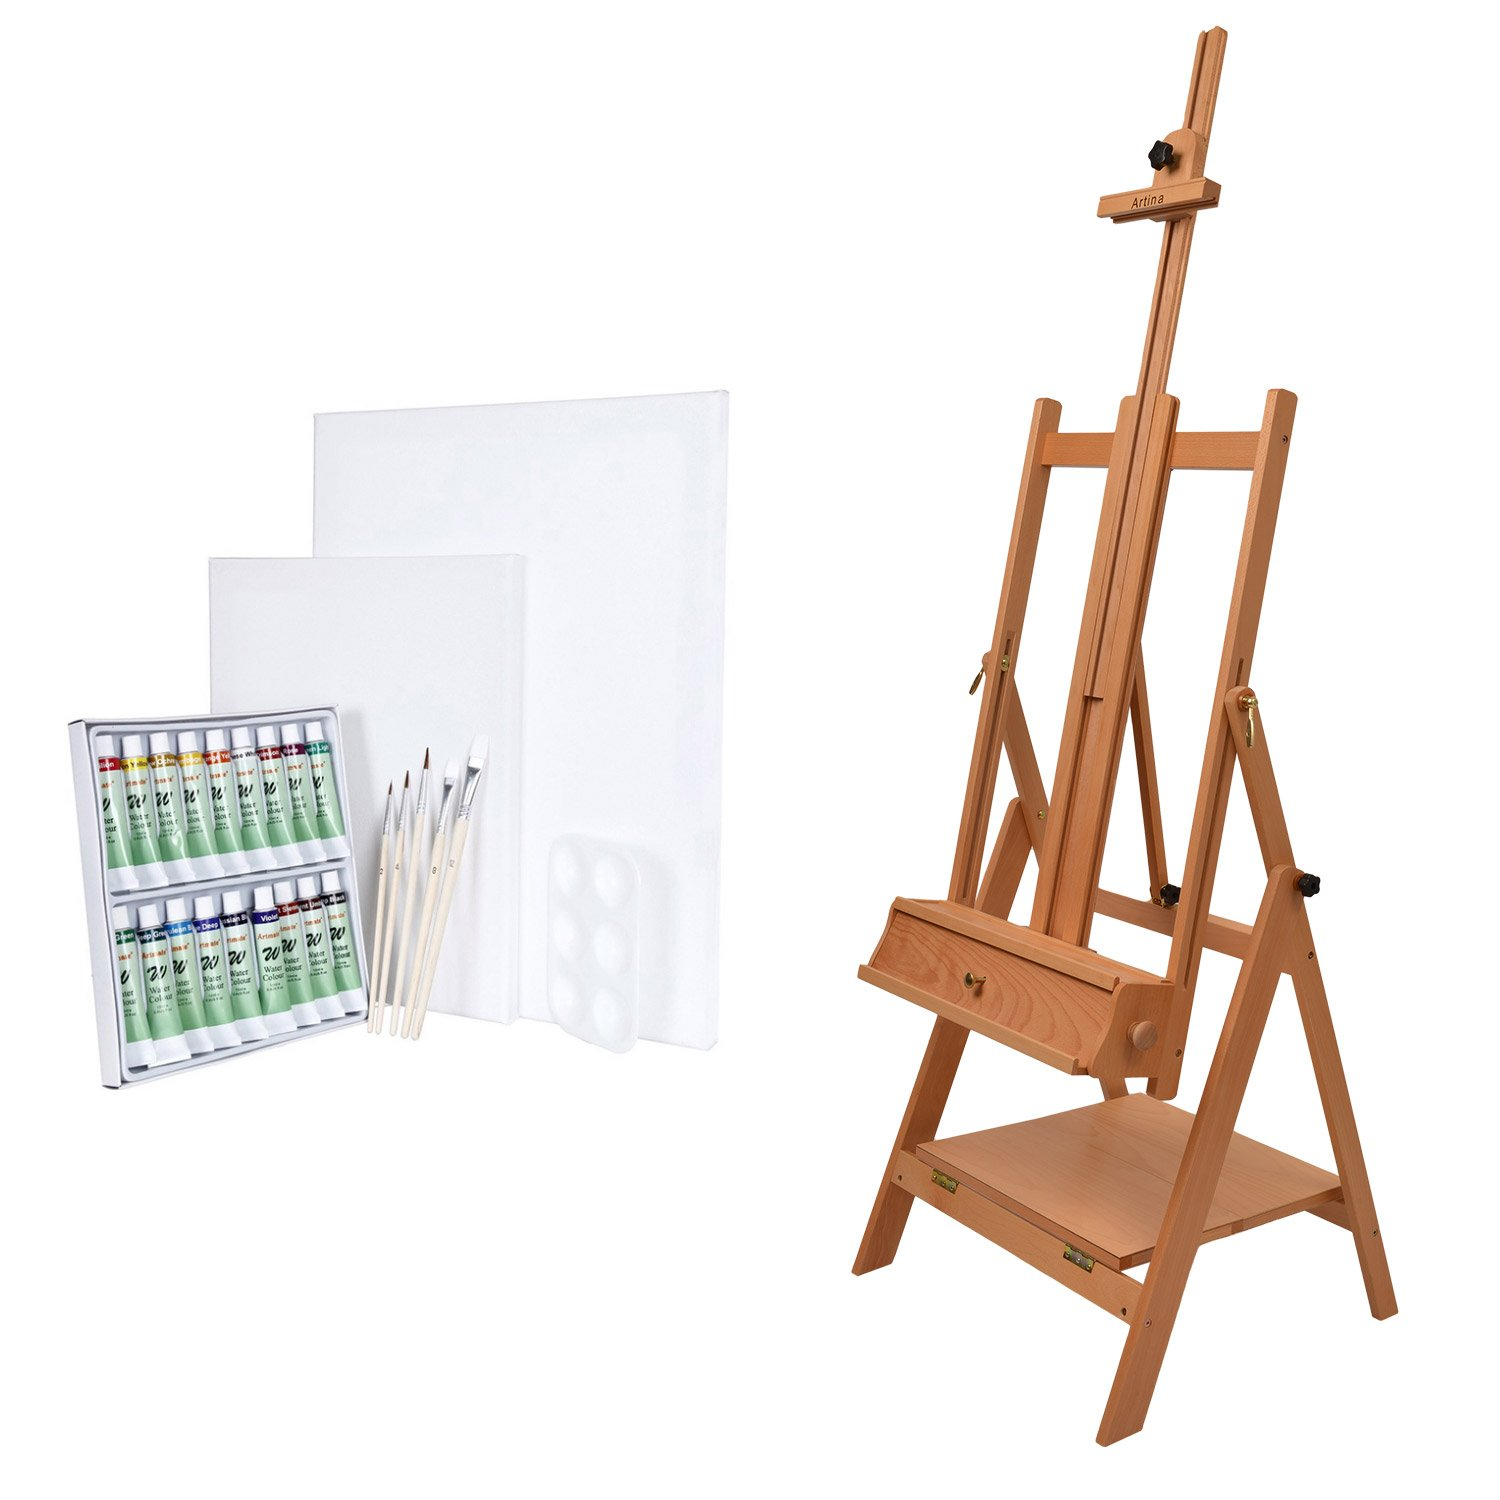 Artina Studio Easel Napoli - Beech-Wood - Artist Easel for Horizontal Painting and Display - 54x180cm (LxW) 51023